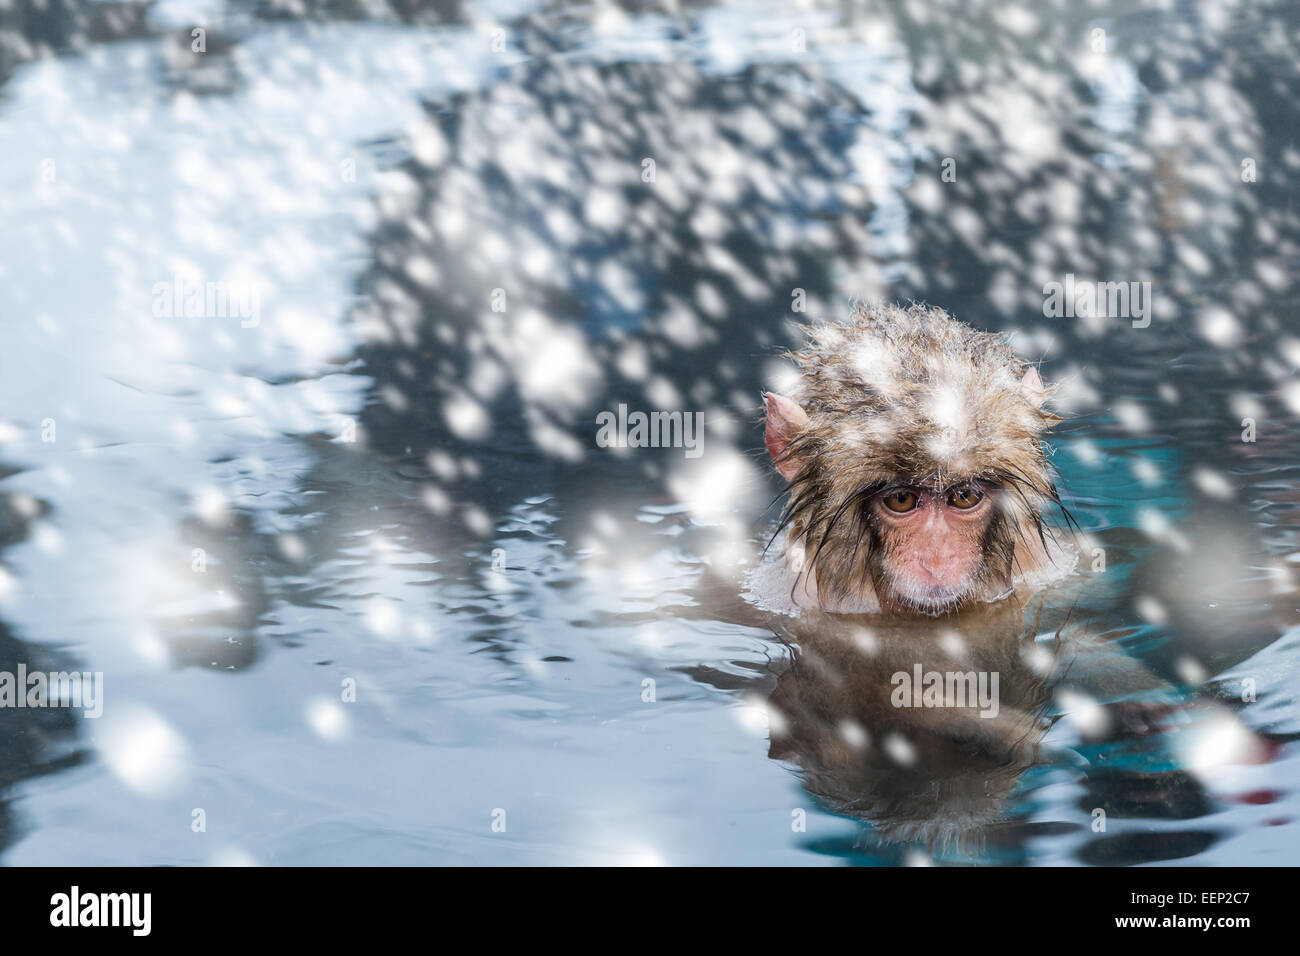 A baby snow monkey soaks in the onsen at the Jigokudani monkey park in Nagano Prefecture, Japan. - Stock Image